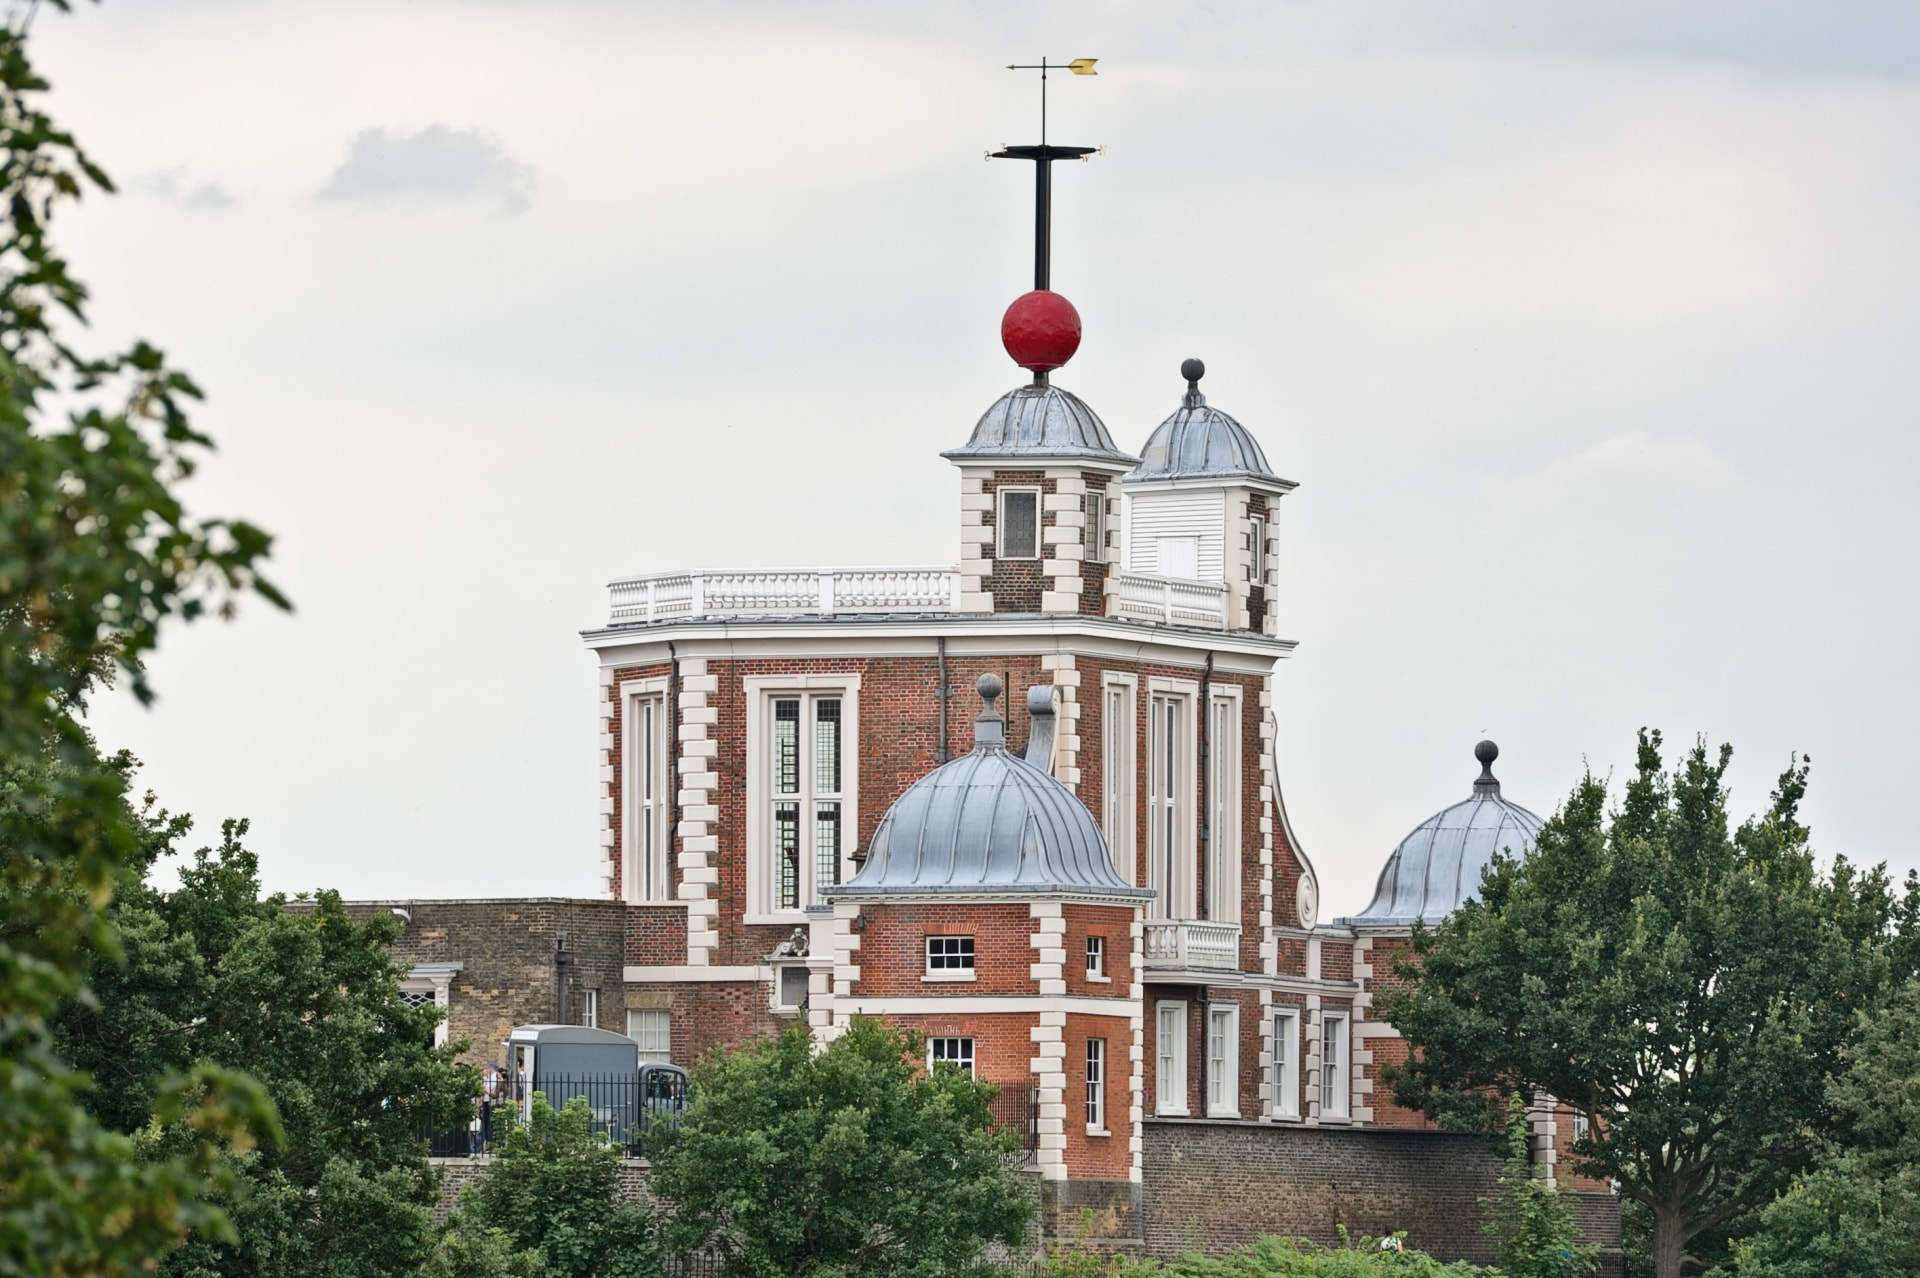 Londres gratis, greenwich